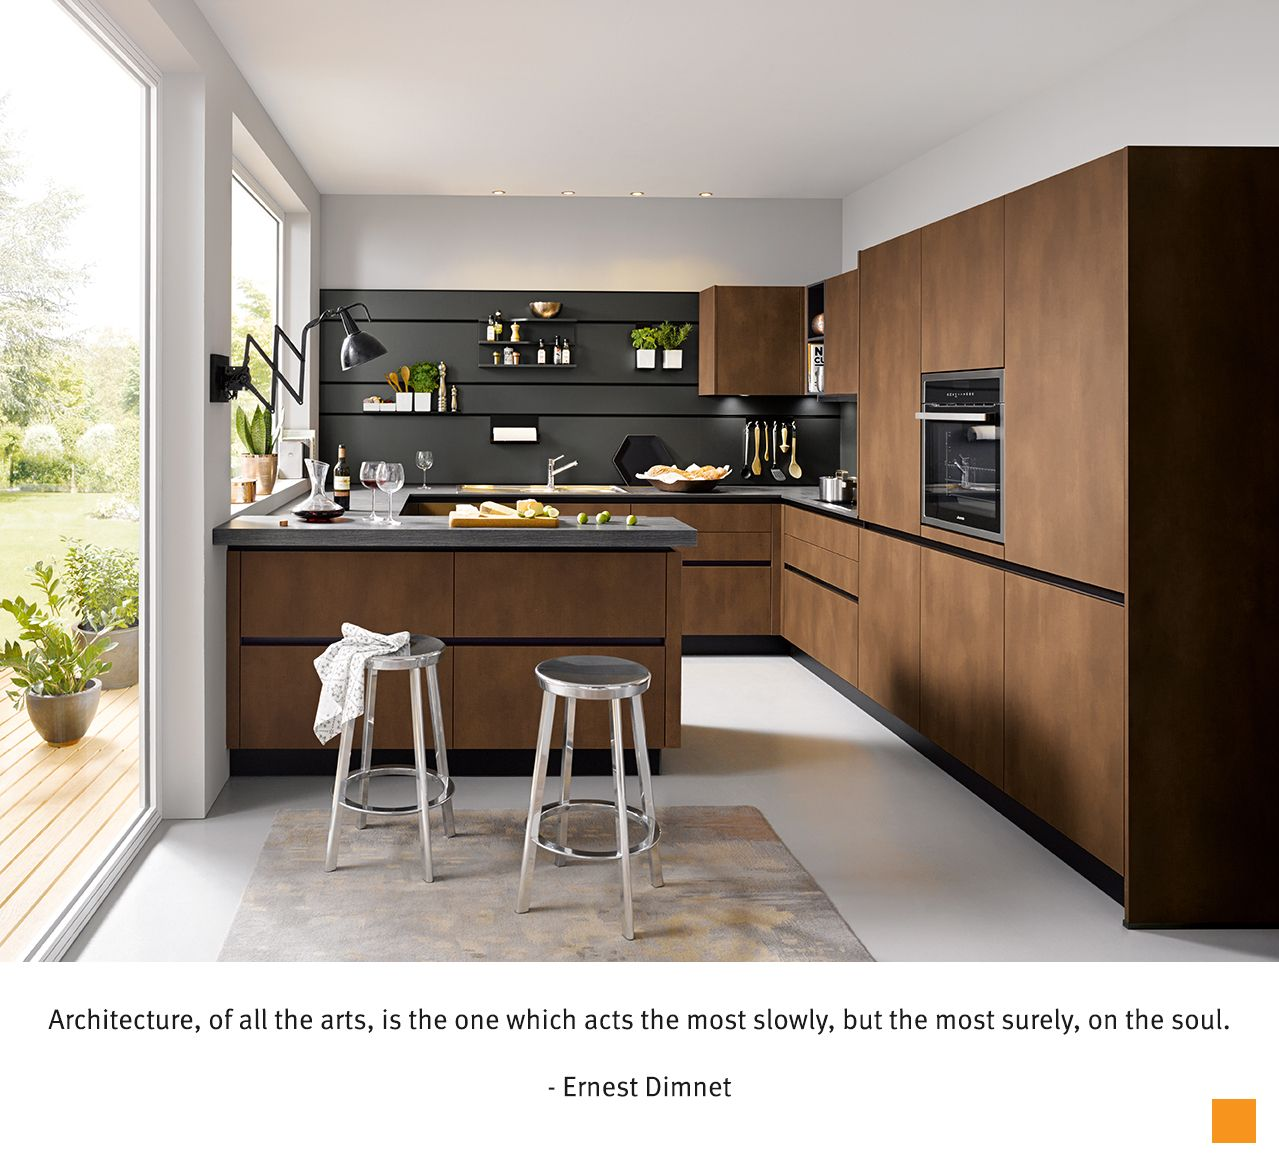 Schuller C Kitchen The Bronze Coloured Front Leaves A Timelessly Elegant Impression In Combi Contemporary Kitchen Design Kitchen Design Trends Kitchen Trends